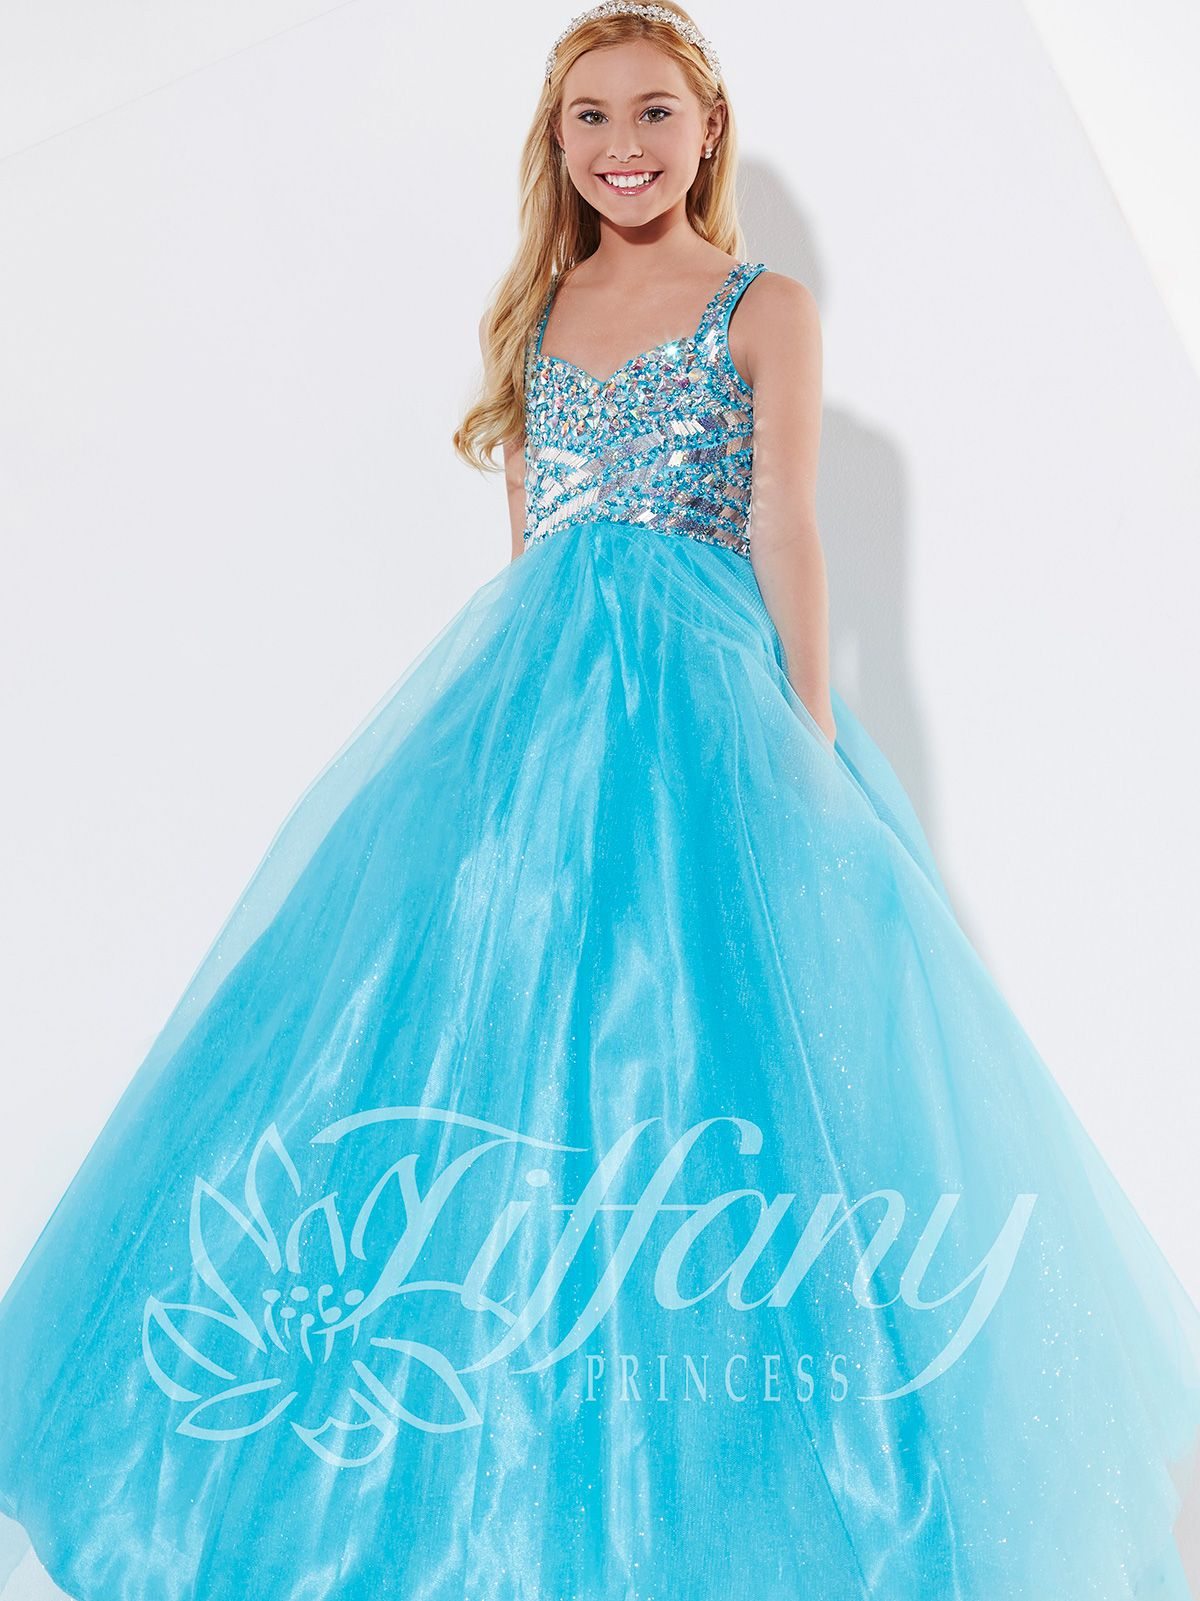 dbb980775bc8 Perfect Tiffany Princess pageant dress for national and state beauty ...